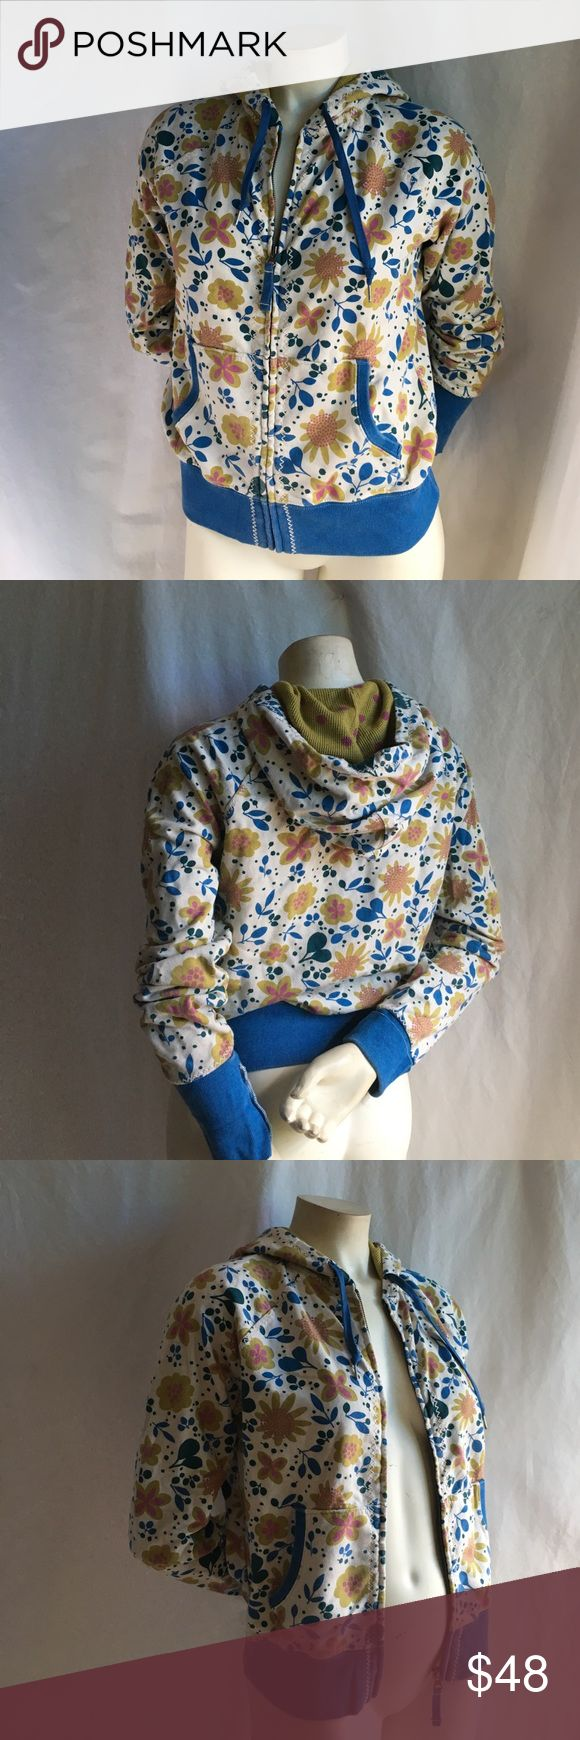 Lucky Brand S Zip Up Hoodie Sweatshirt Blue Floral Lucky Brand size small preowned zip up hoodie in retro blue floral. Polka dot interior. Clean and ready to wear with general signs of wear like being laundered. Accepting offers! Lucky Brand Sweaters Cardigans